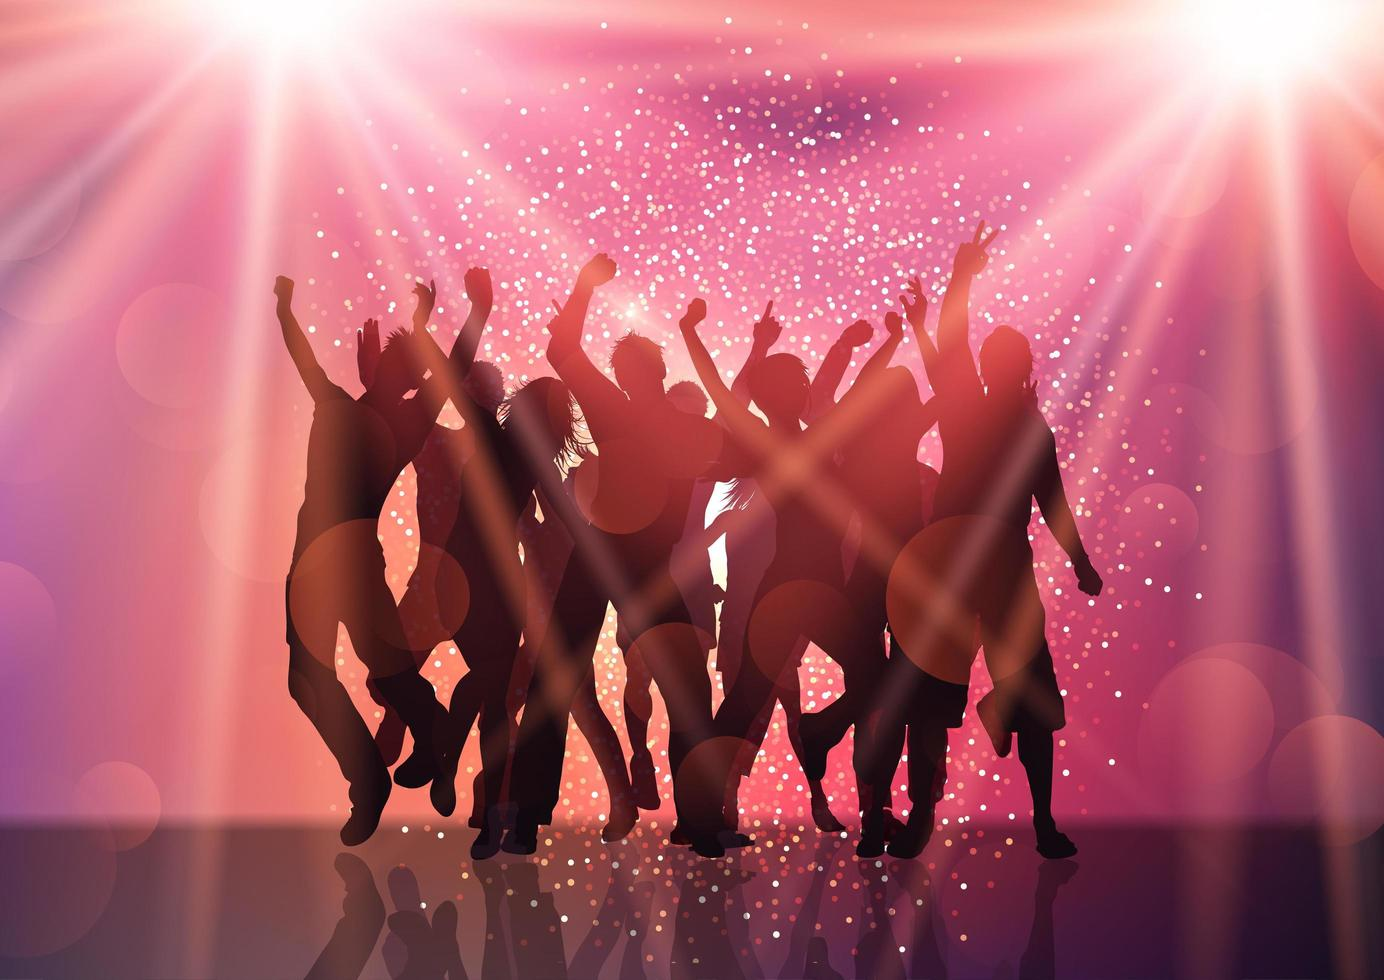 Party Crowd with Spotlights and Confetti vector